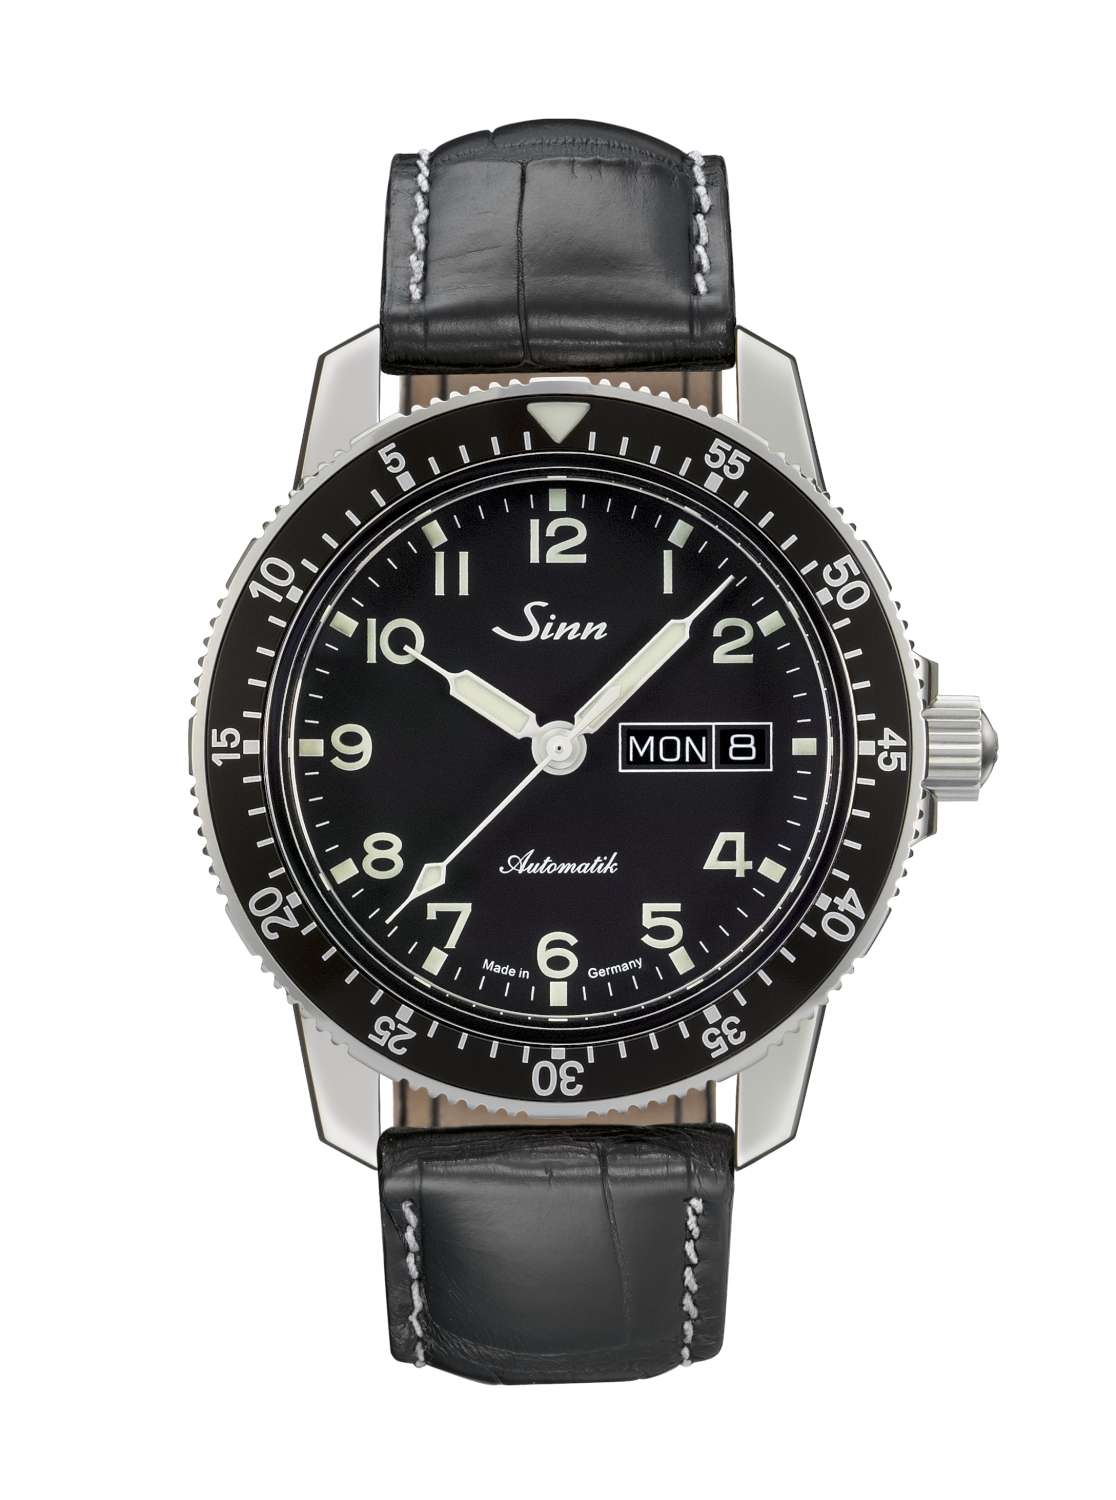 Sinn 104 St Sa A pilot's watch